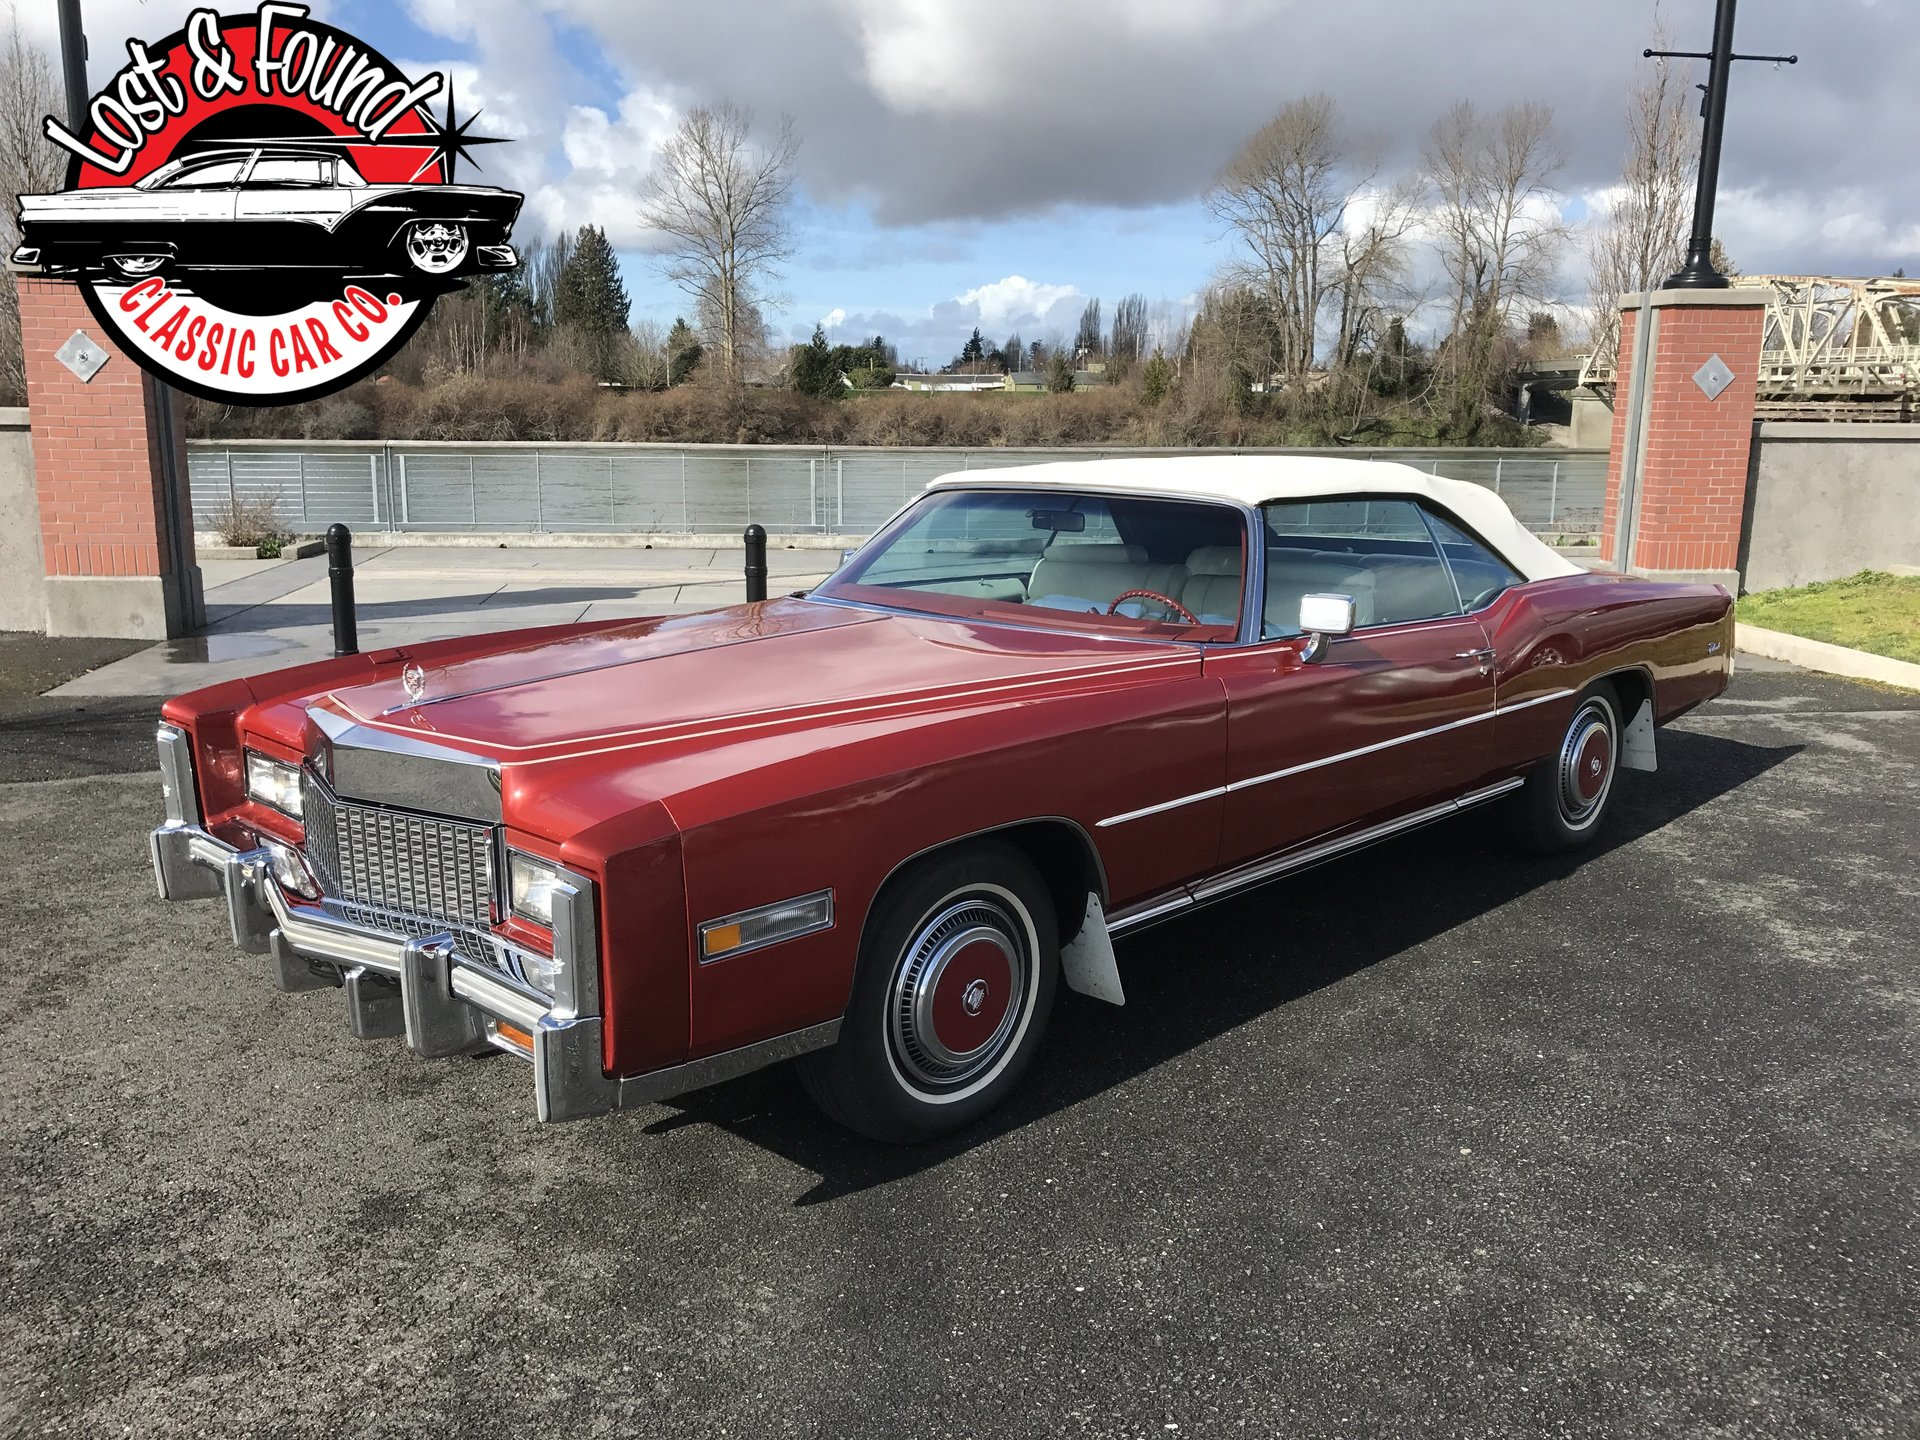 sold september melbourne lot eldorado auction monday shannons spring convertible cadillac classic auctions rhd